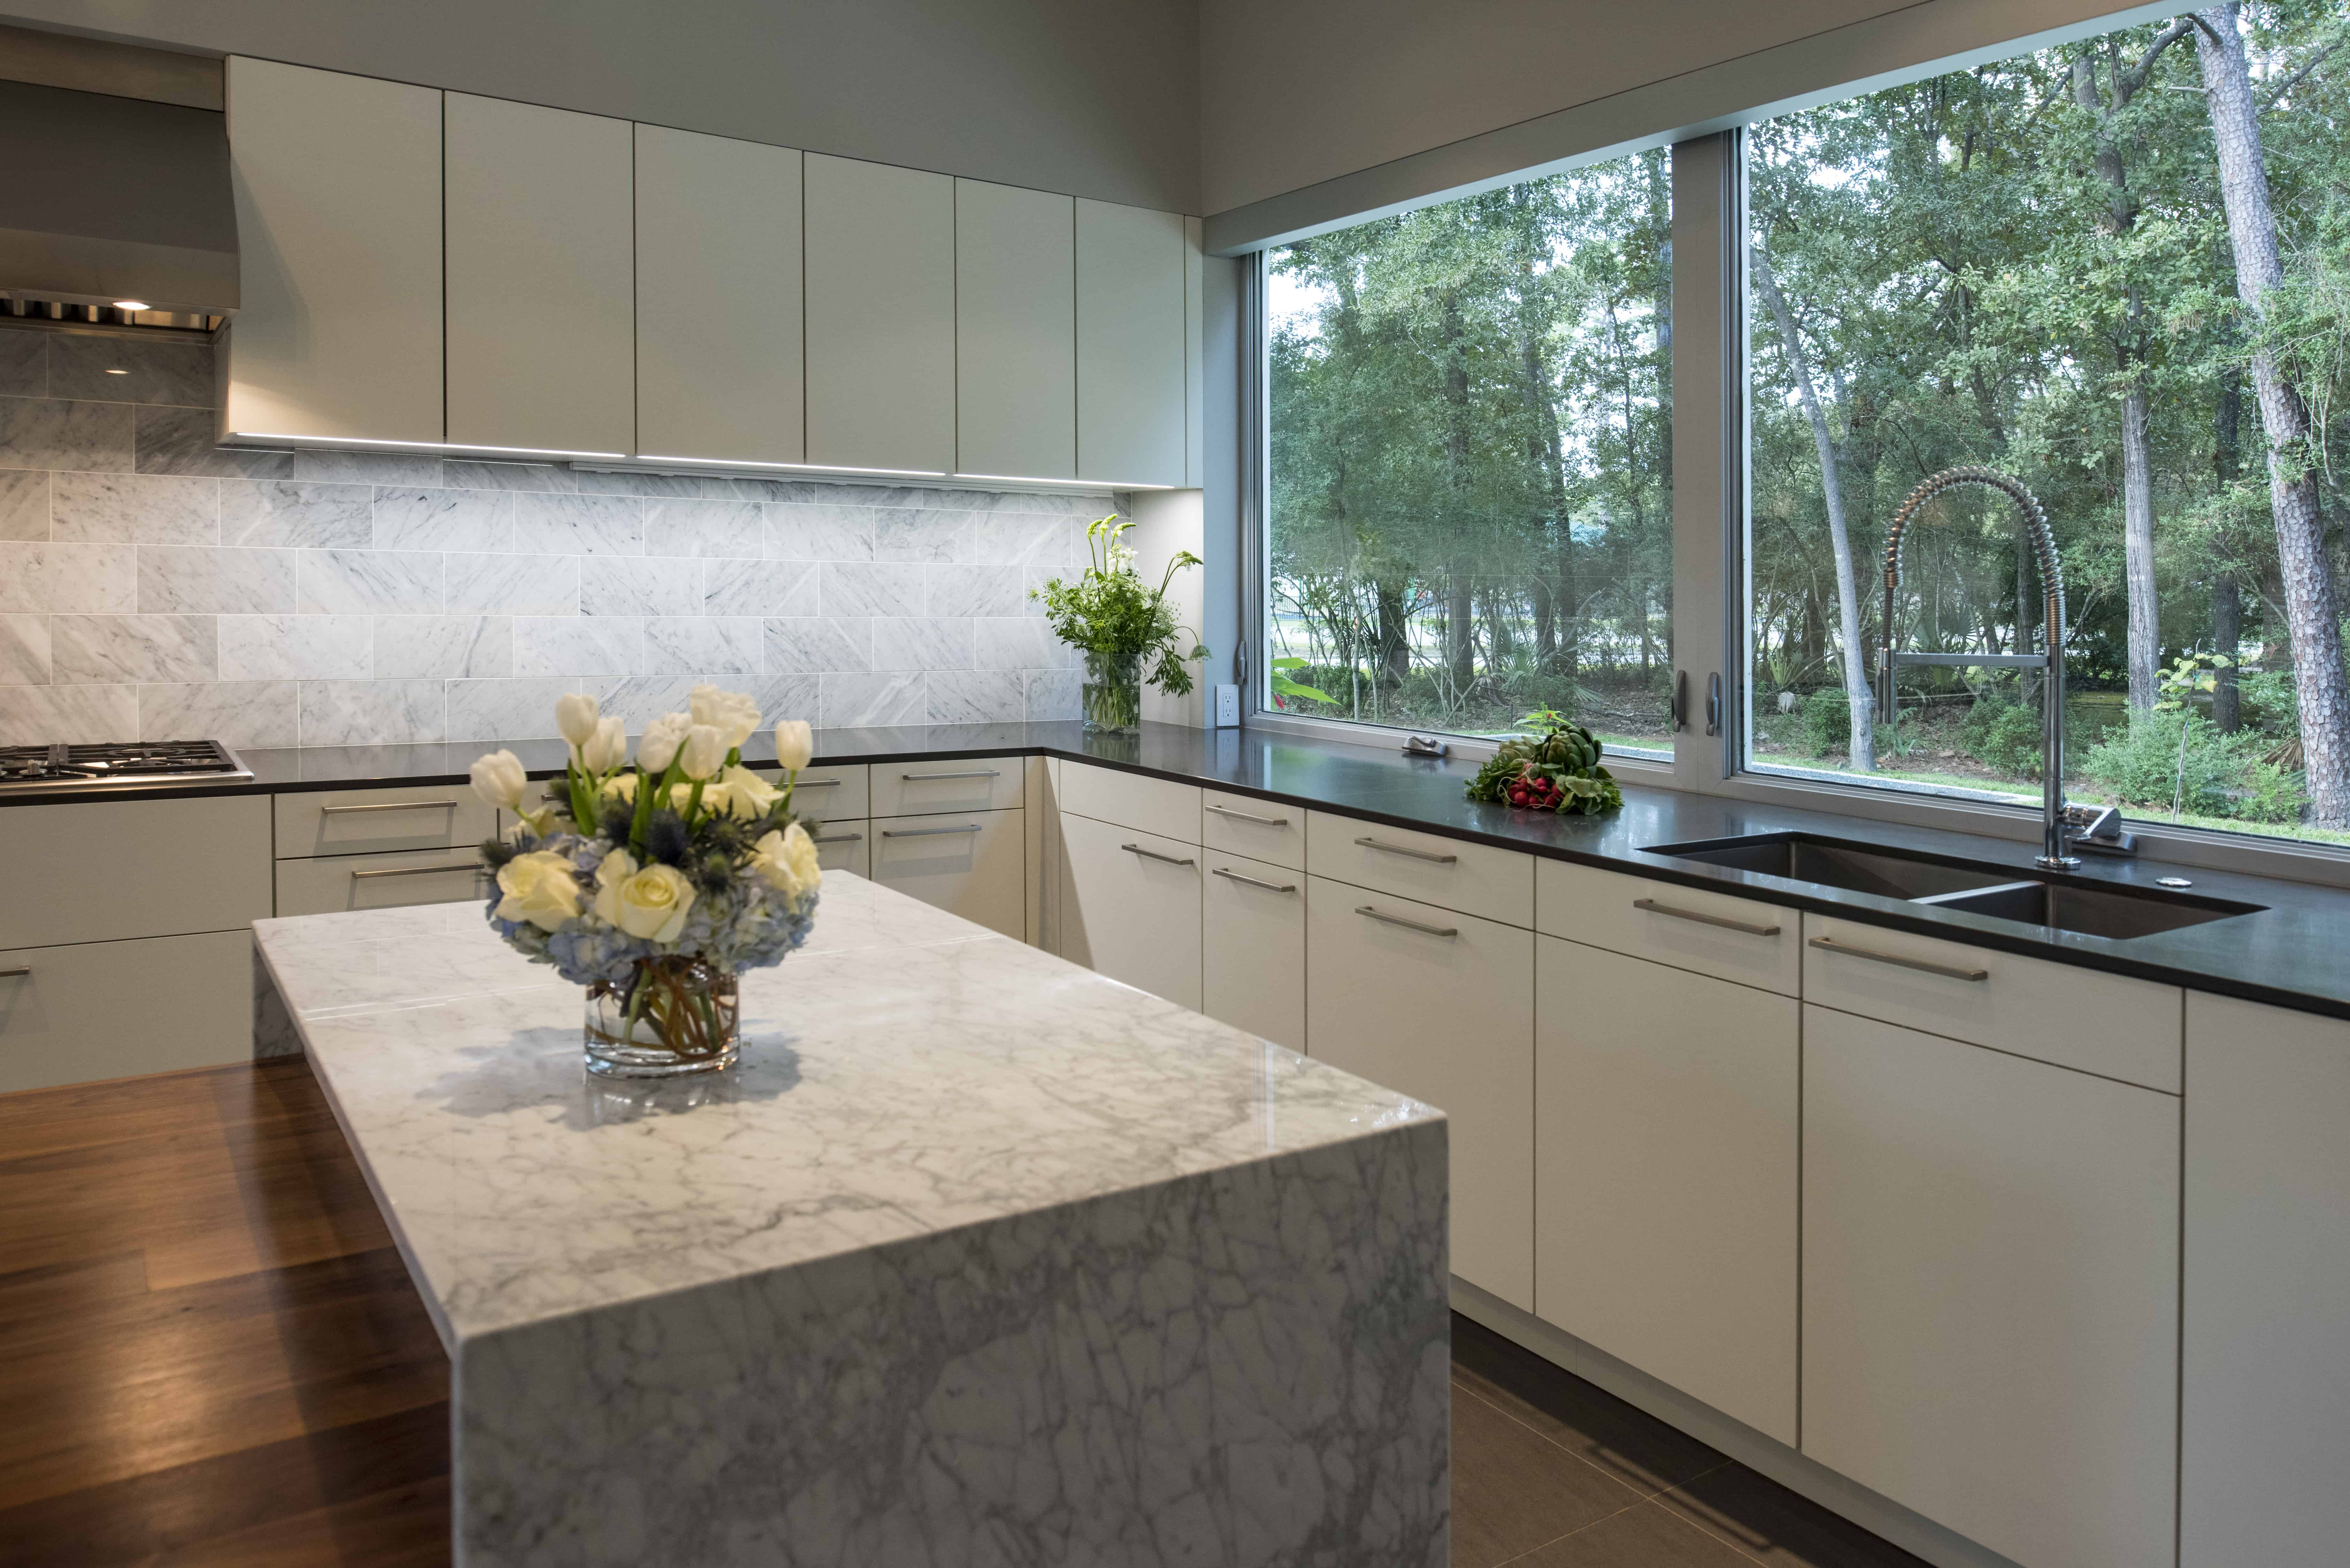 Hunters Creek Memorial Modern Custom Home kitchen grey and white with walnut island and marble